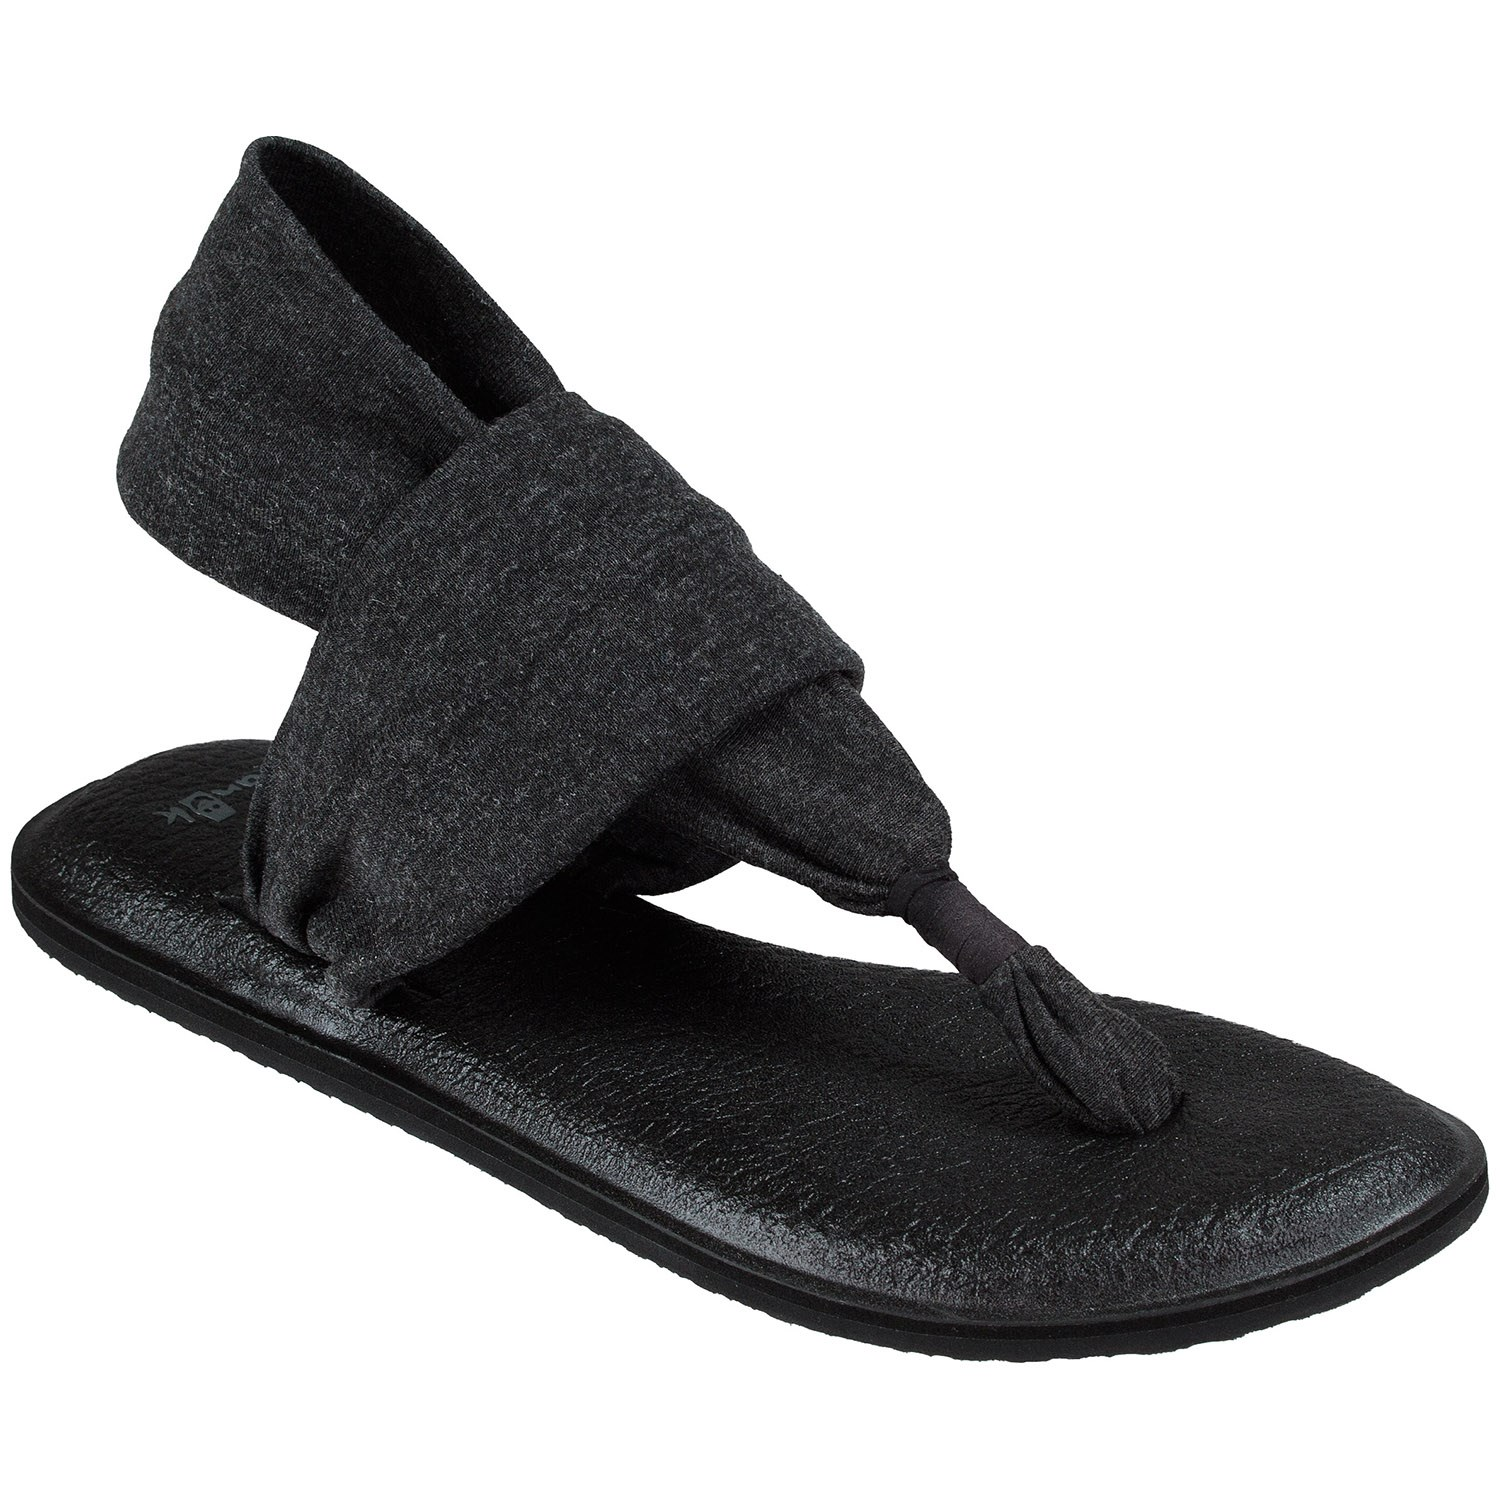 Sanuk Sandals Yoga Sling On Du It Womens hQrxtsdC